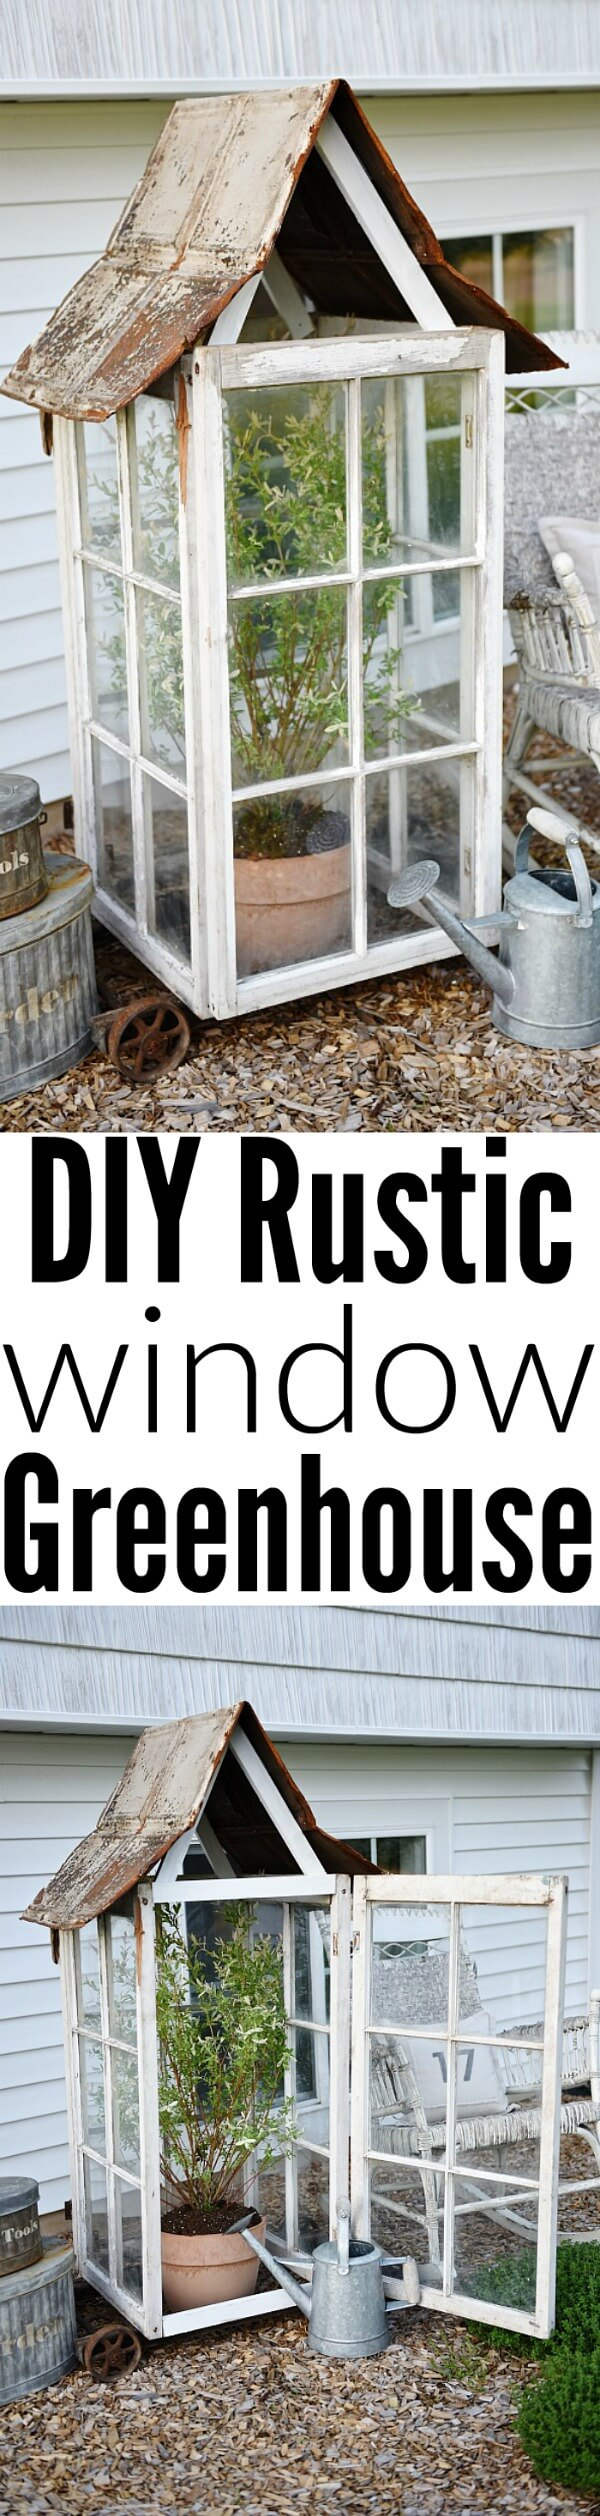 A Single- Sized Rustic Green House For Plants | Build a beautiful outdoor greenhouse | Creative Greenhouse DIY plans